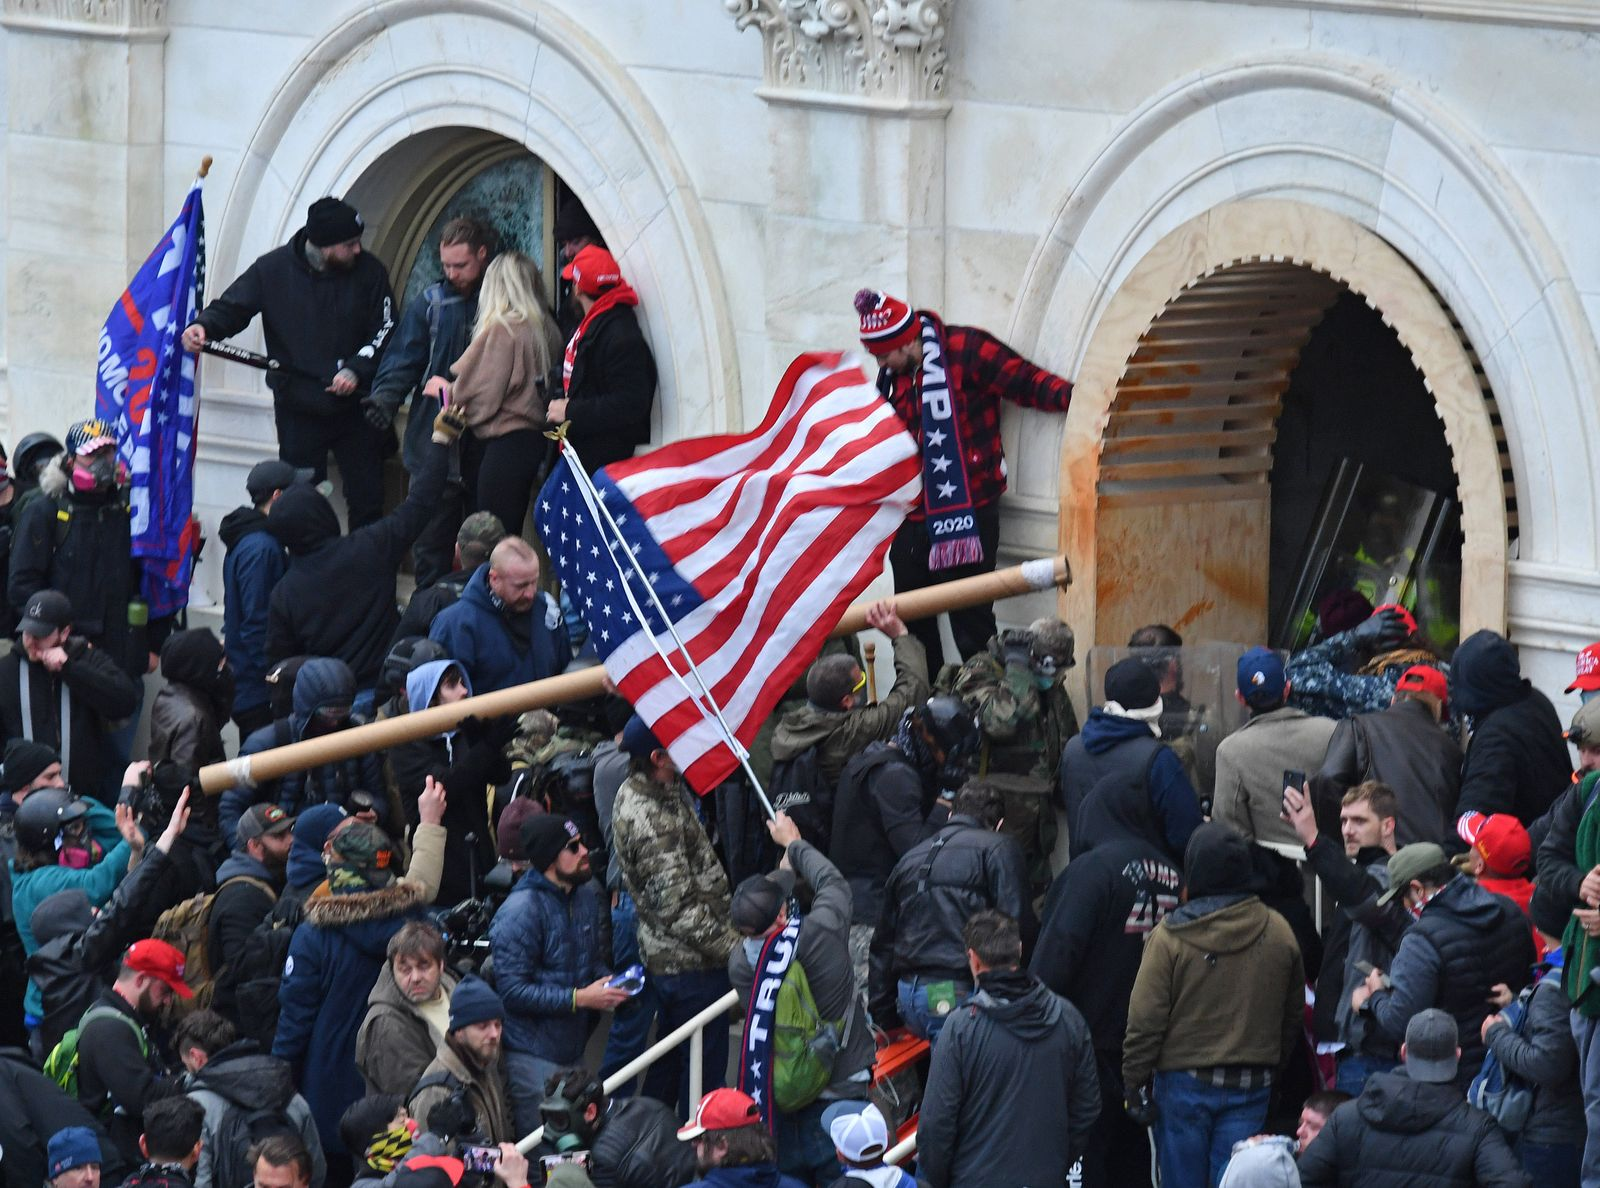 January 6, 2021, Washington, District of Columbia, USA: As thousands of pro- Trump supporters rallied on January 6, 202